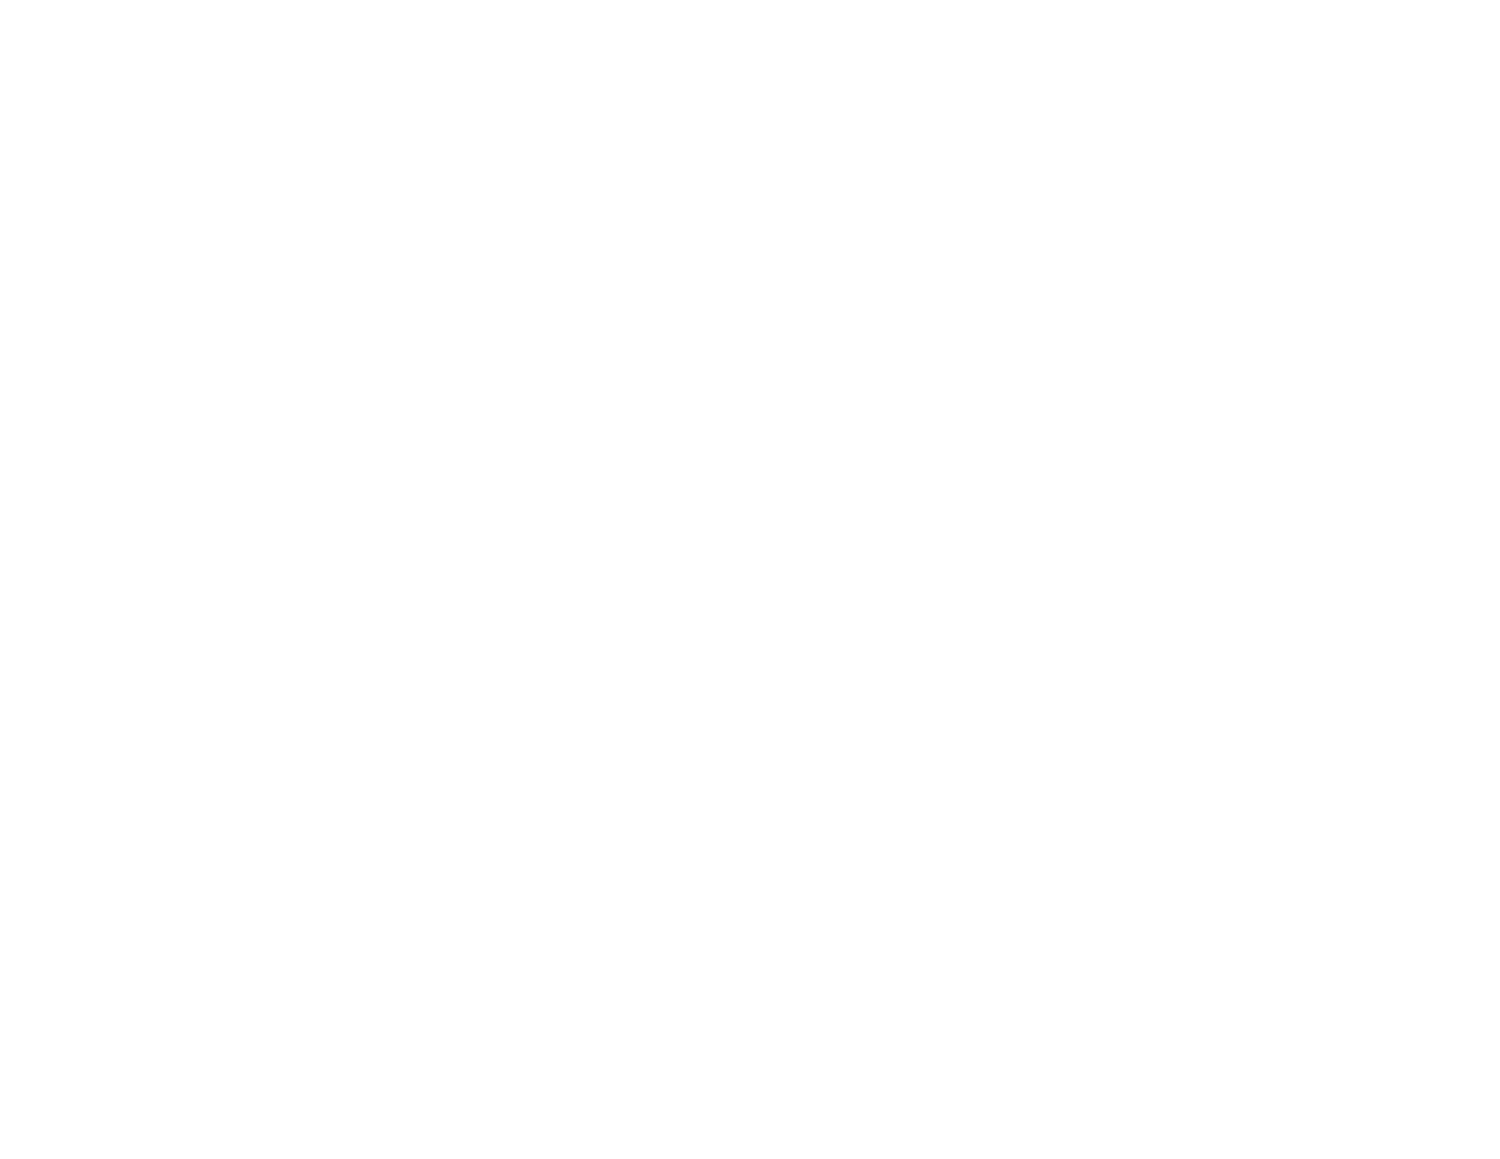 Sound Life Church